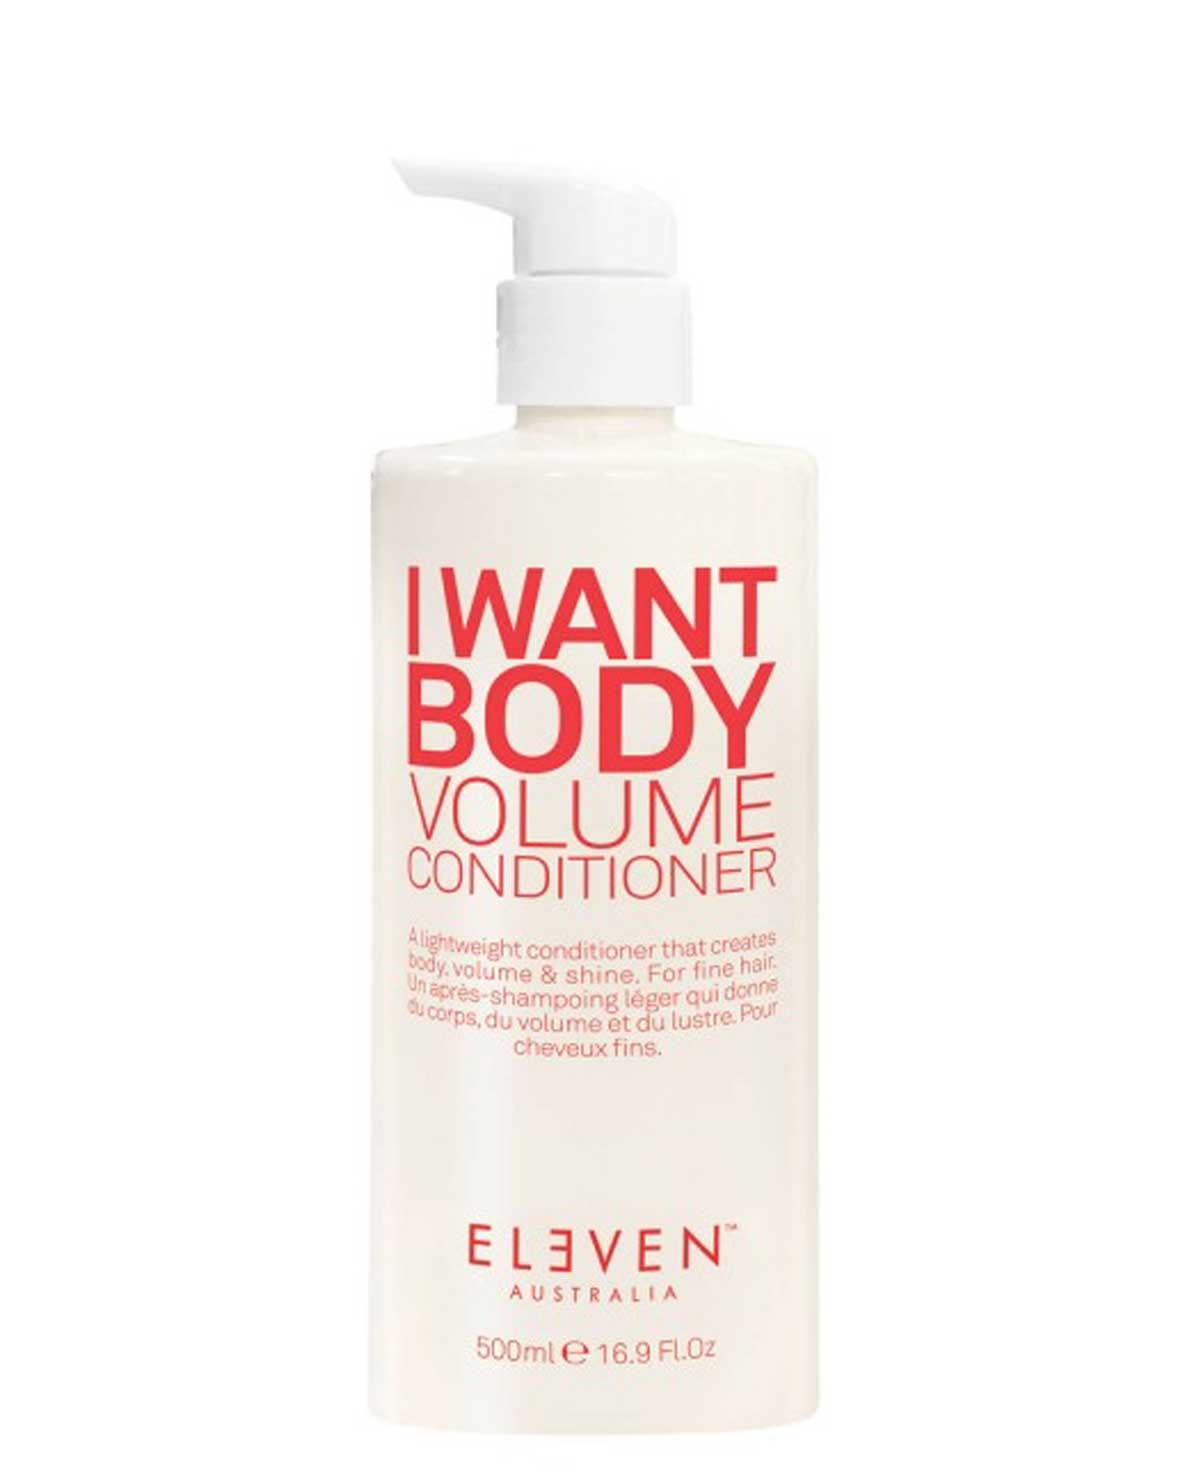 Eleven I Want Body Volume Conditioner 500ml Limited Edition